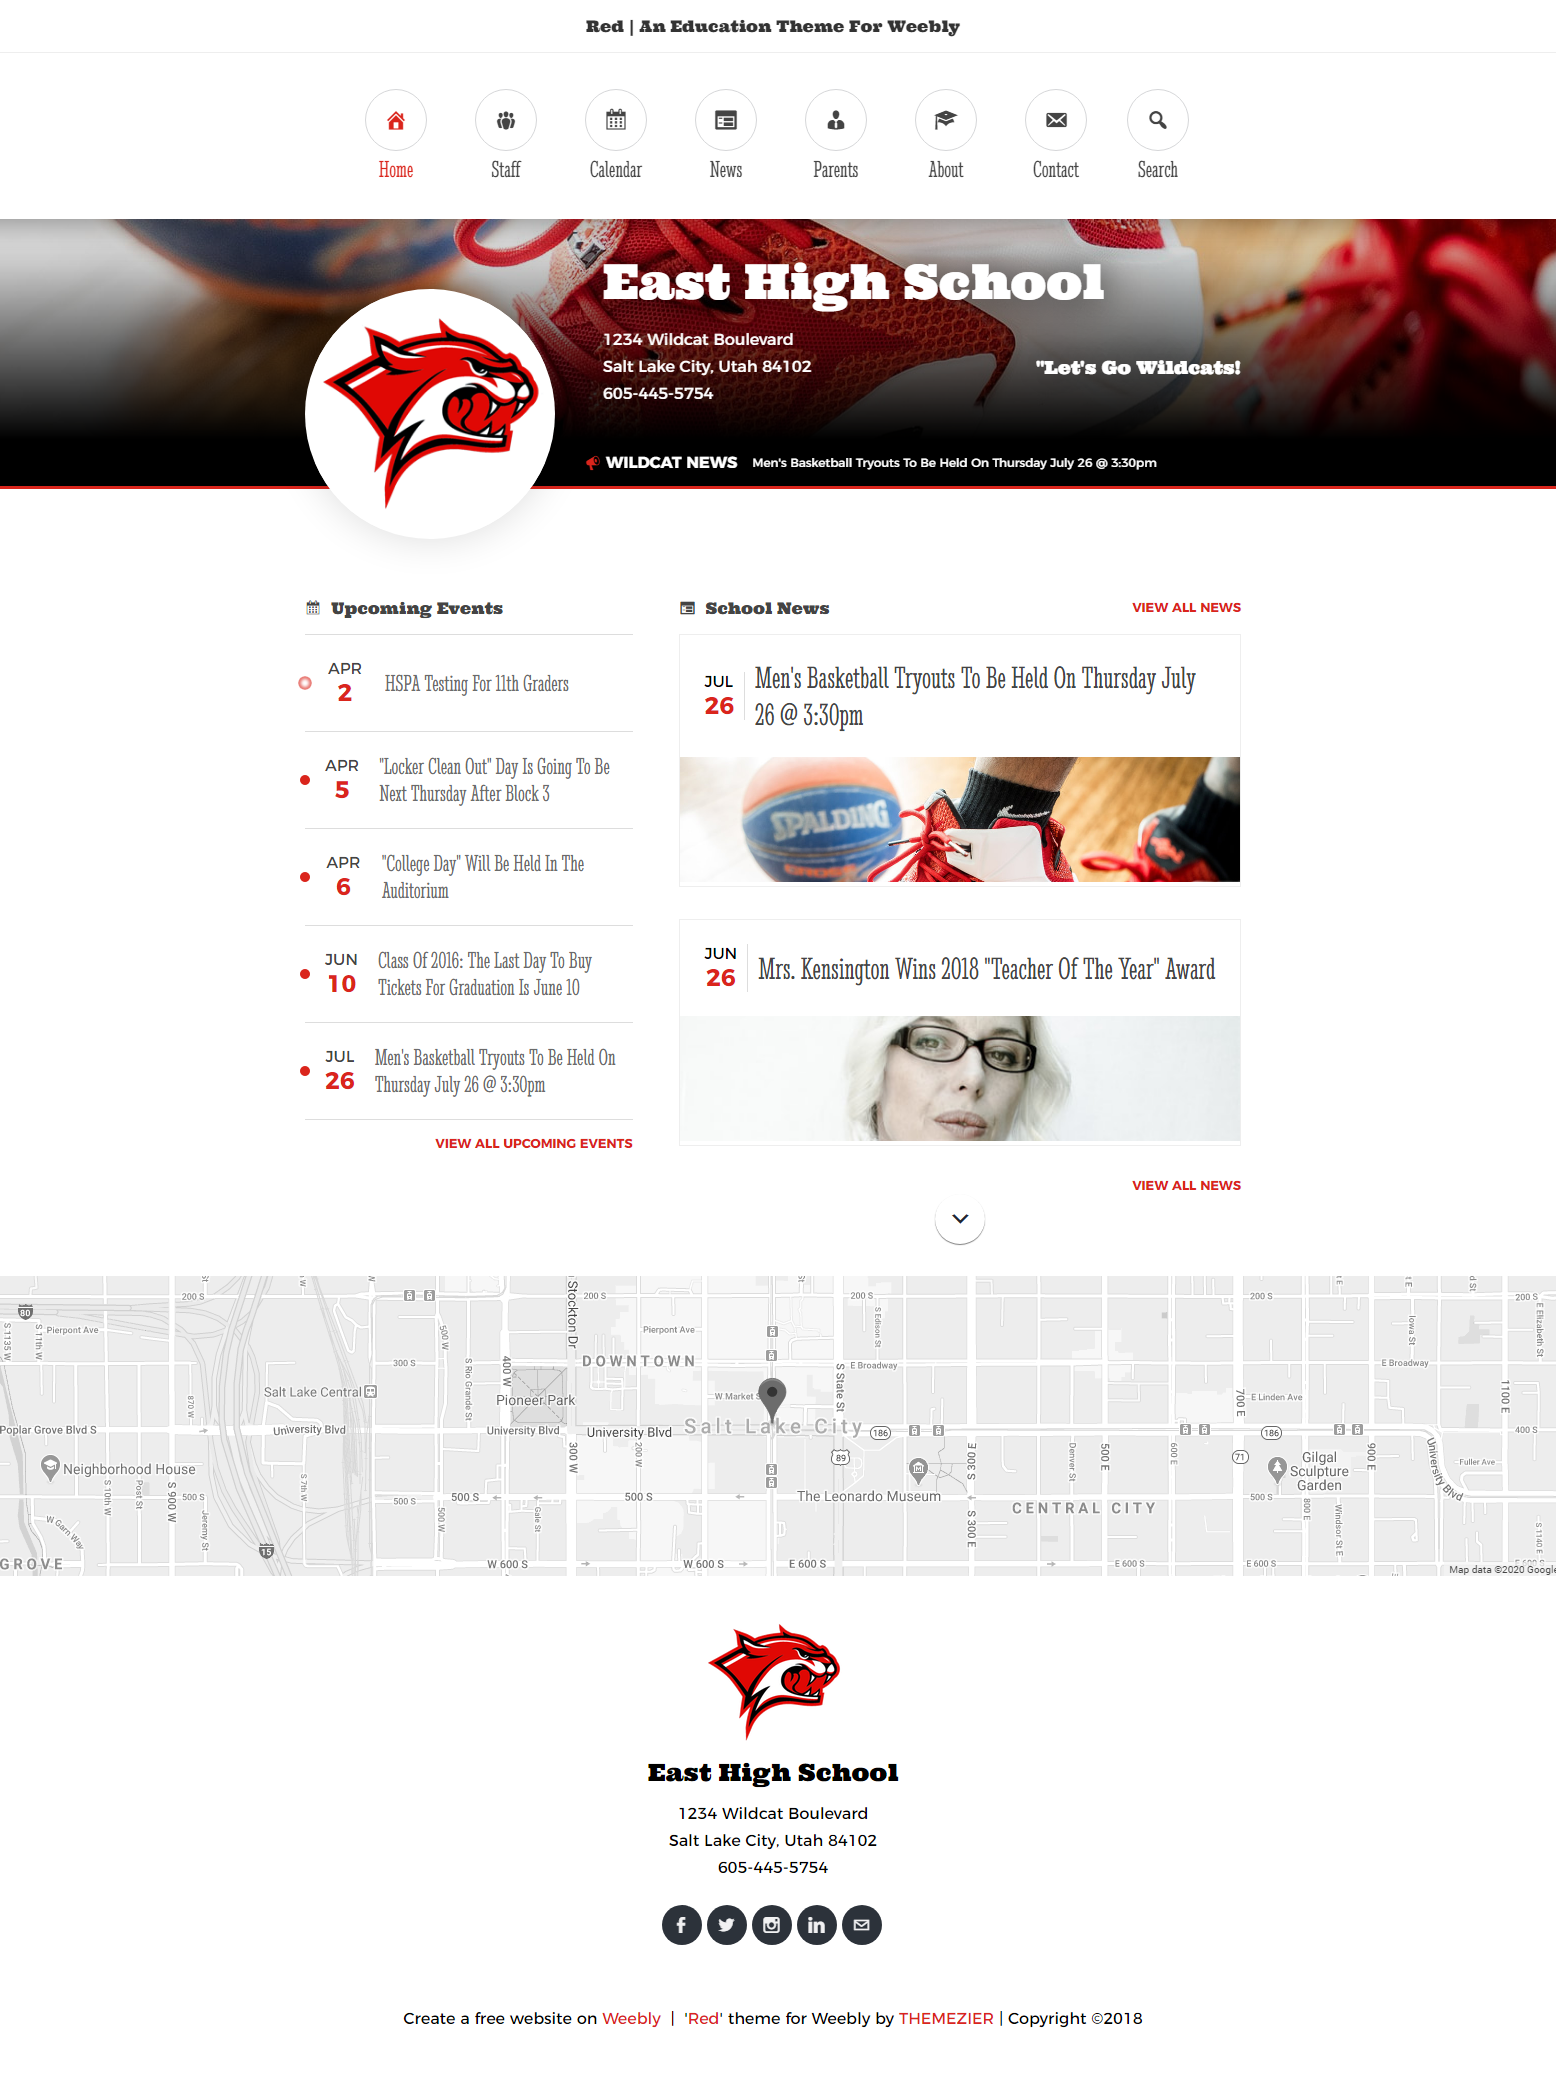 Red Weebly Education Theme